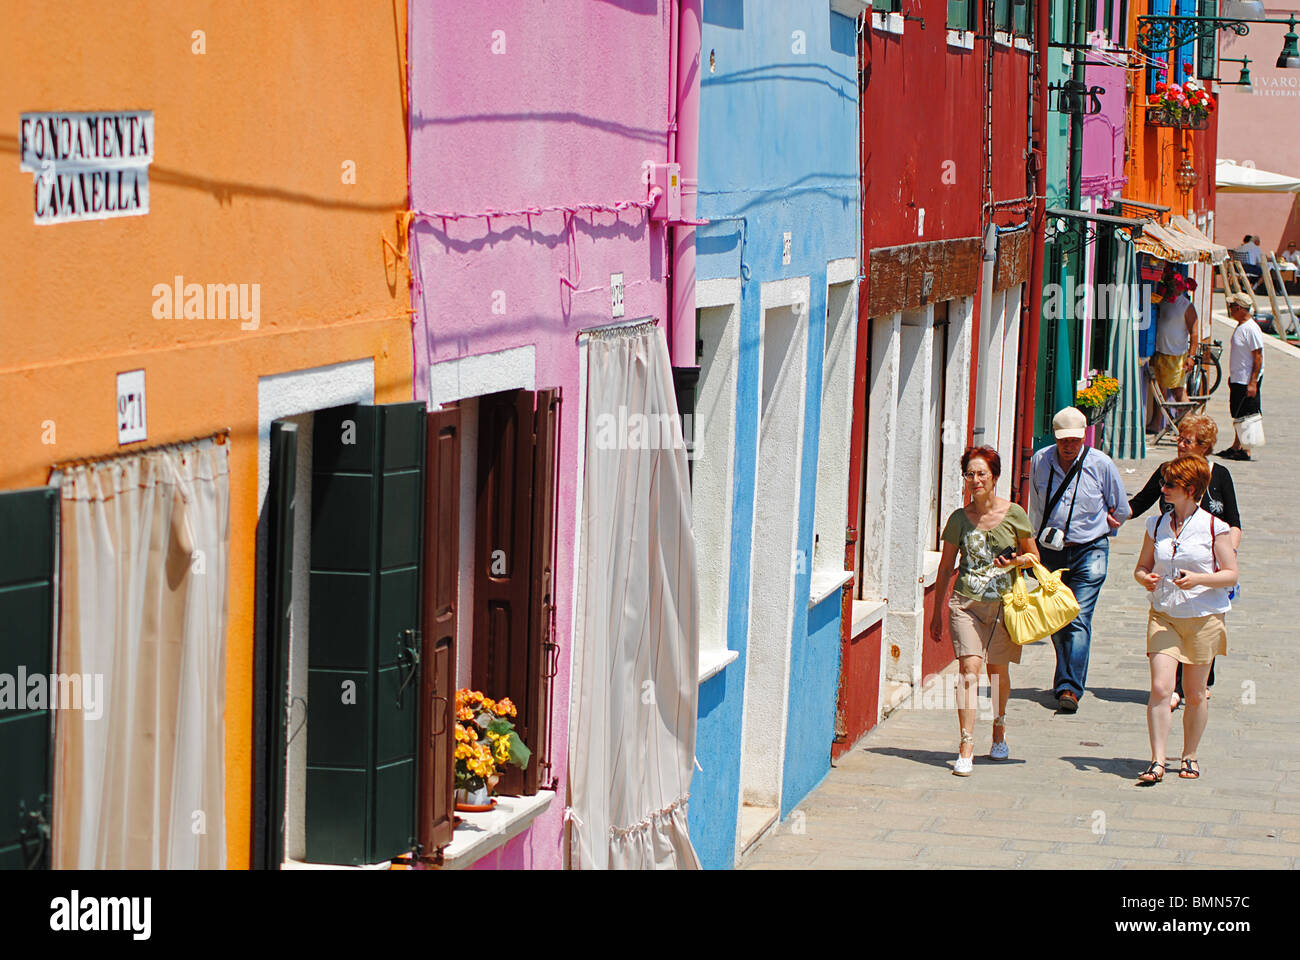 Colorful burano italy burano tourism - Stock Photo Tourists Walk Down A Colorful Street On The Island Of Burano Italy